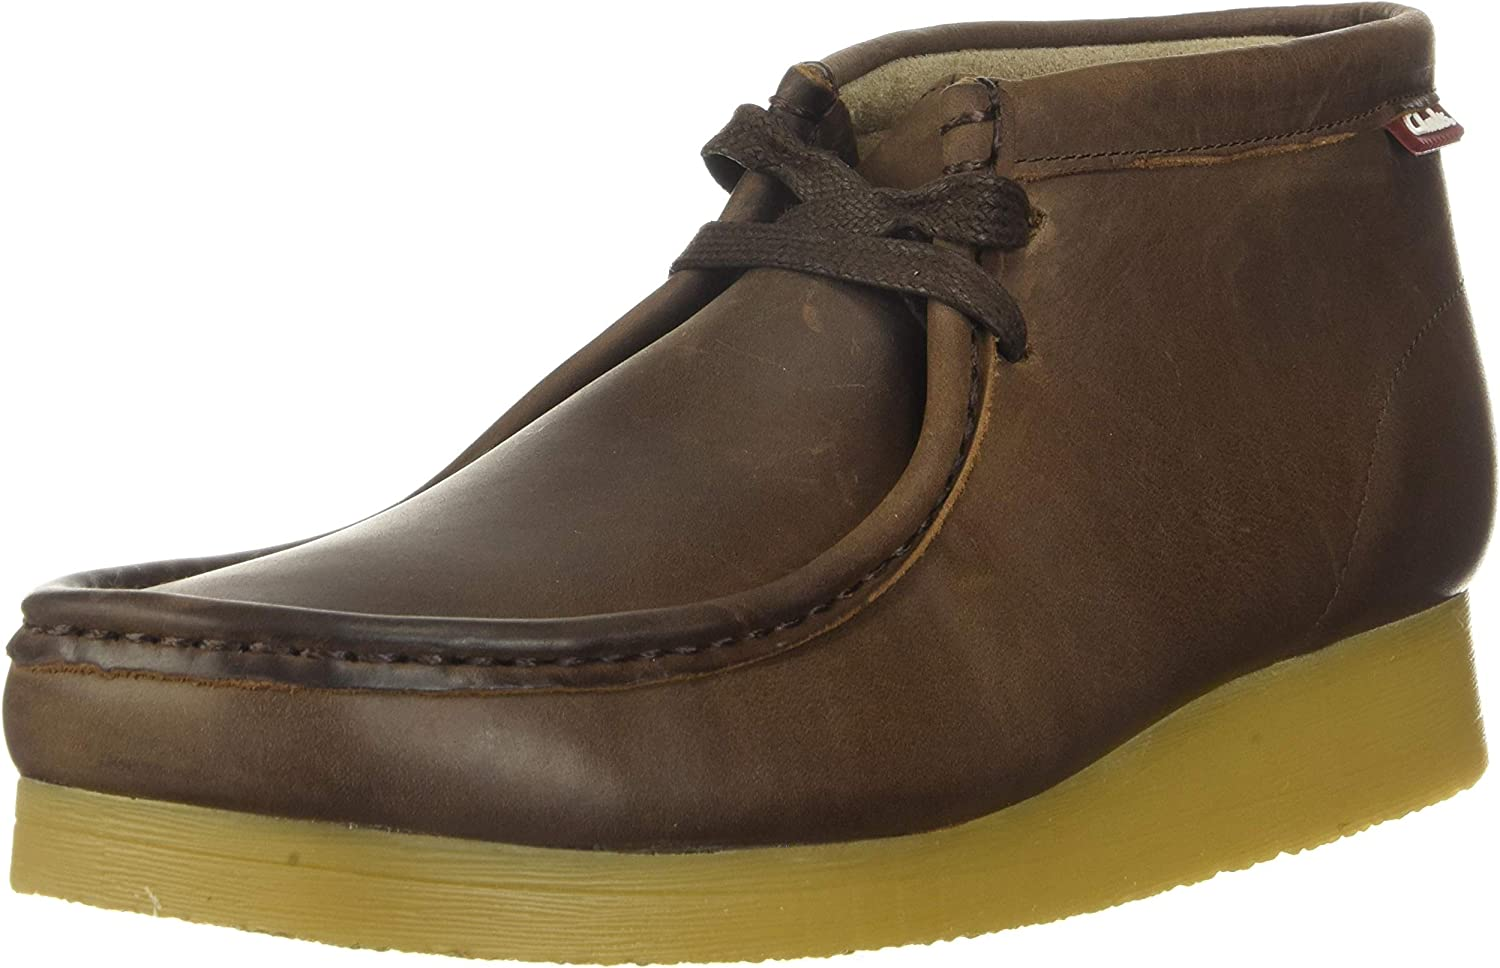 Clarks Max 53% OFF Opening large release sale Men's Stinson Chukka Hi Boot